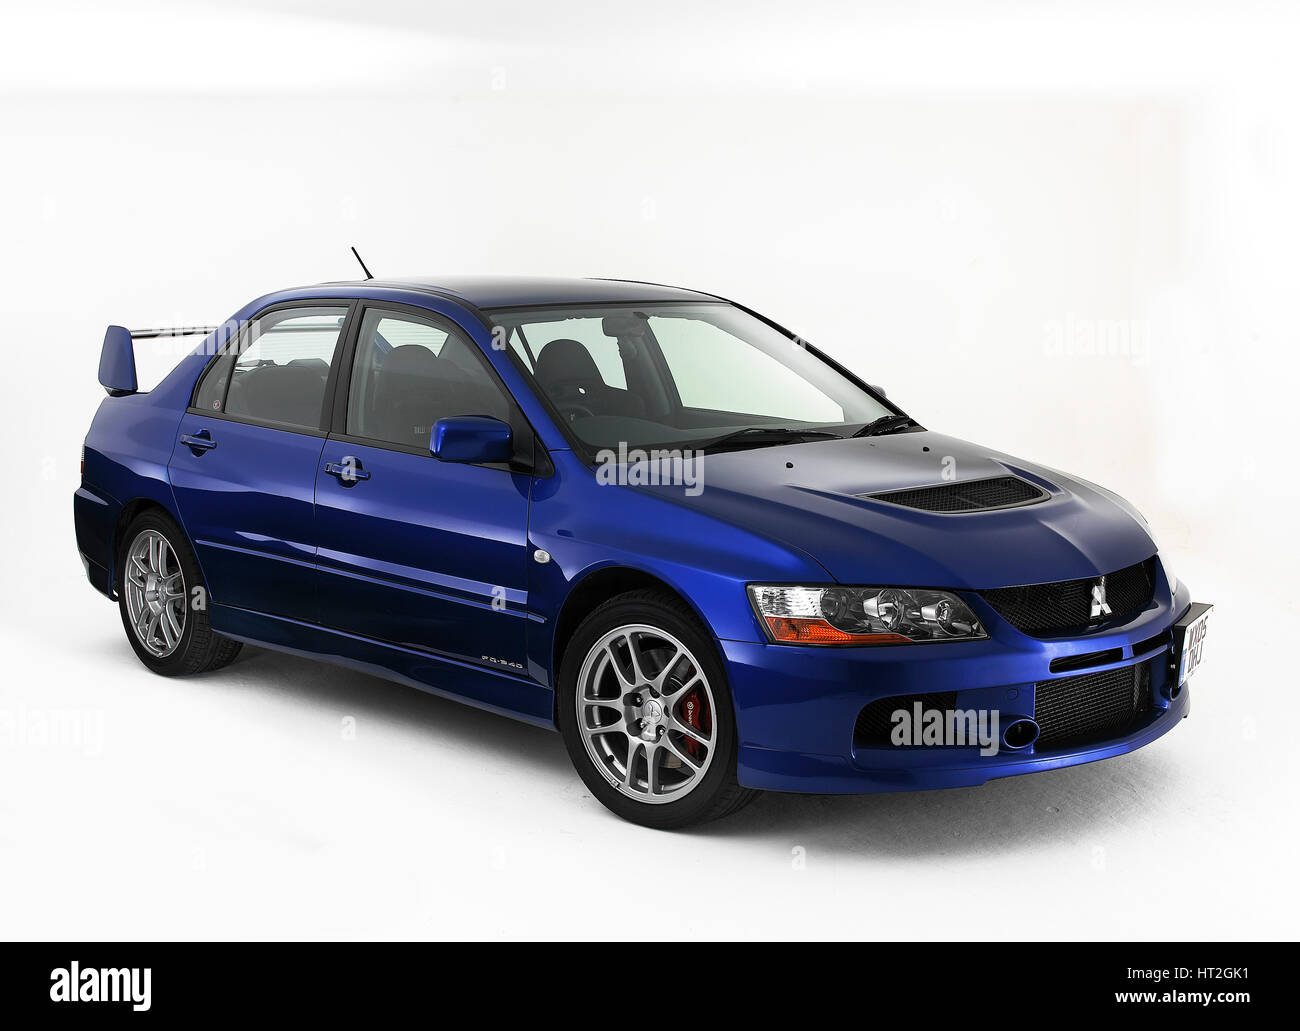 Evo 9 High Resolution Stock Photography And Images Alamy